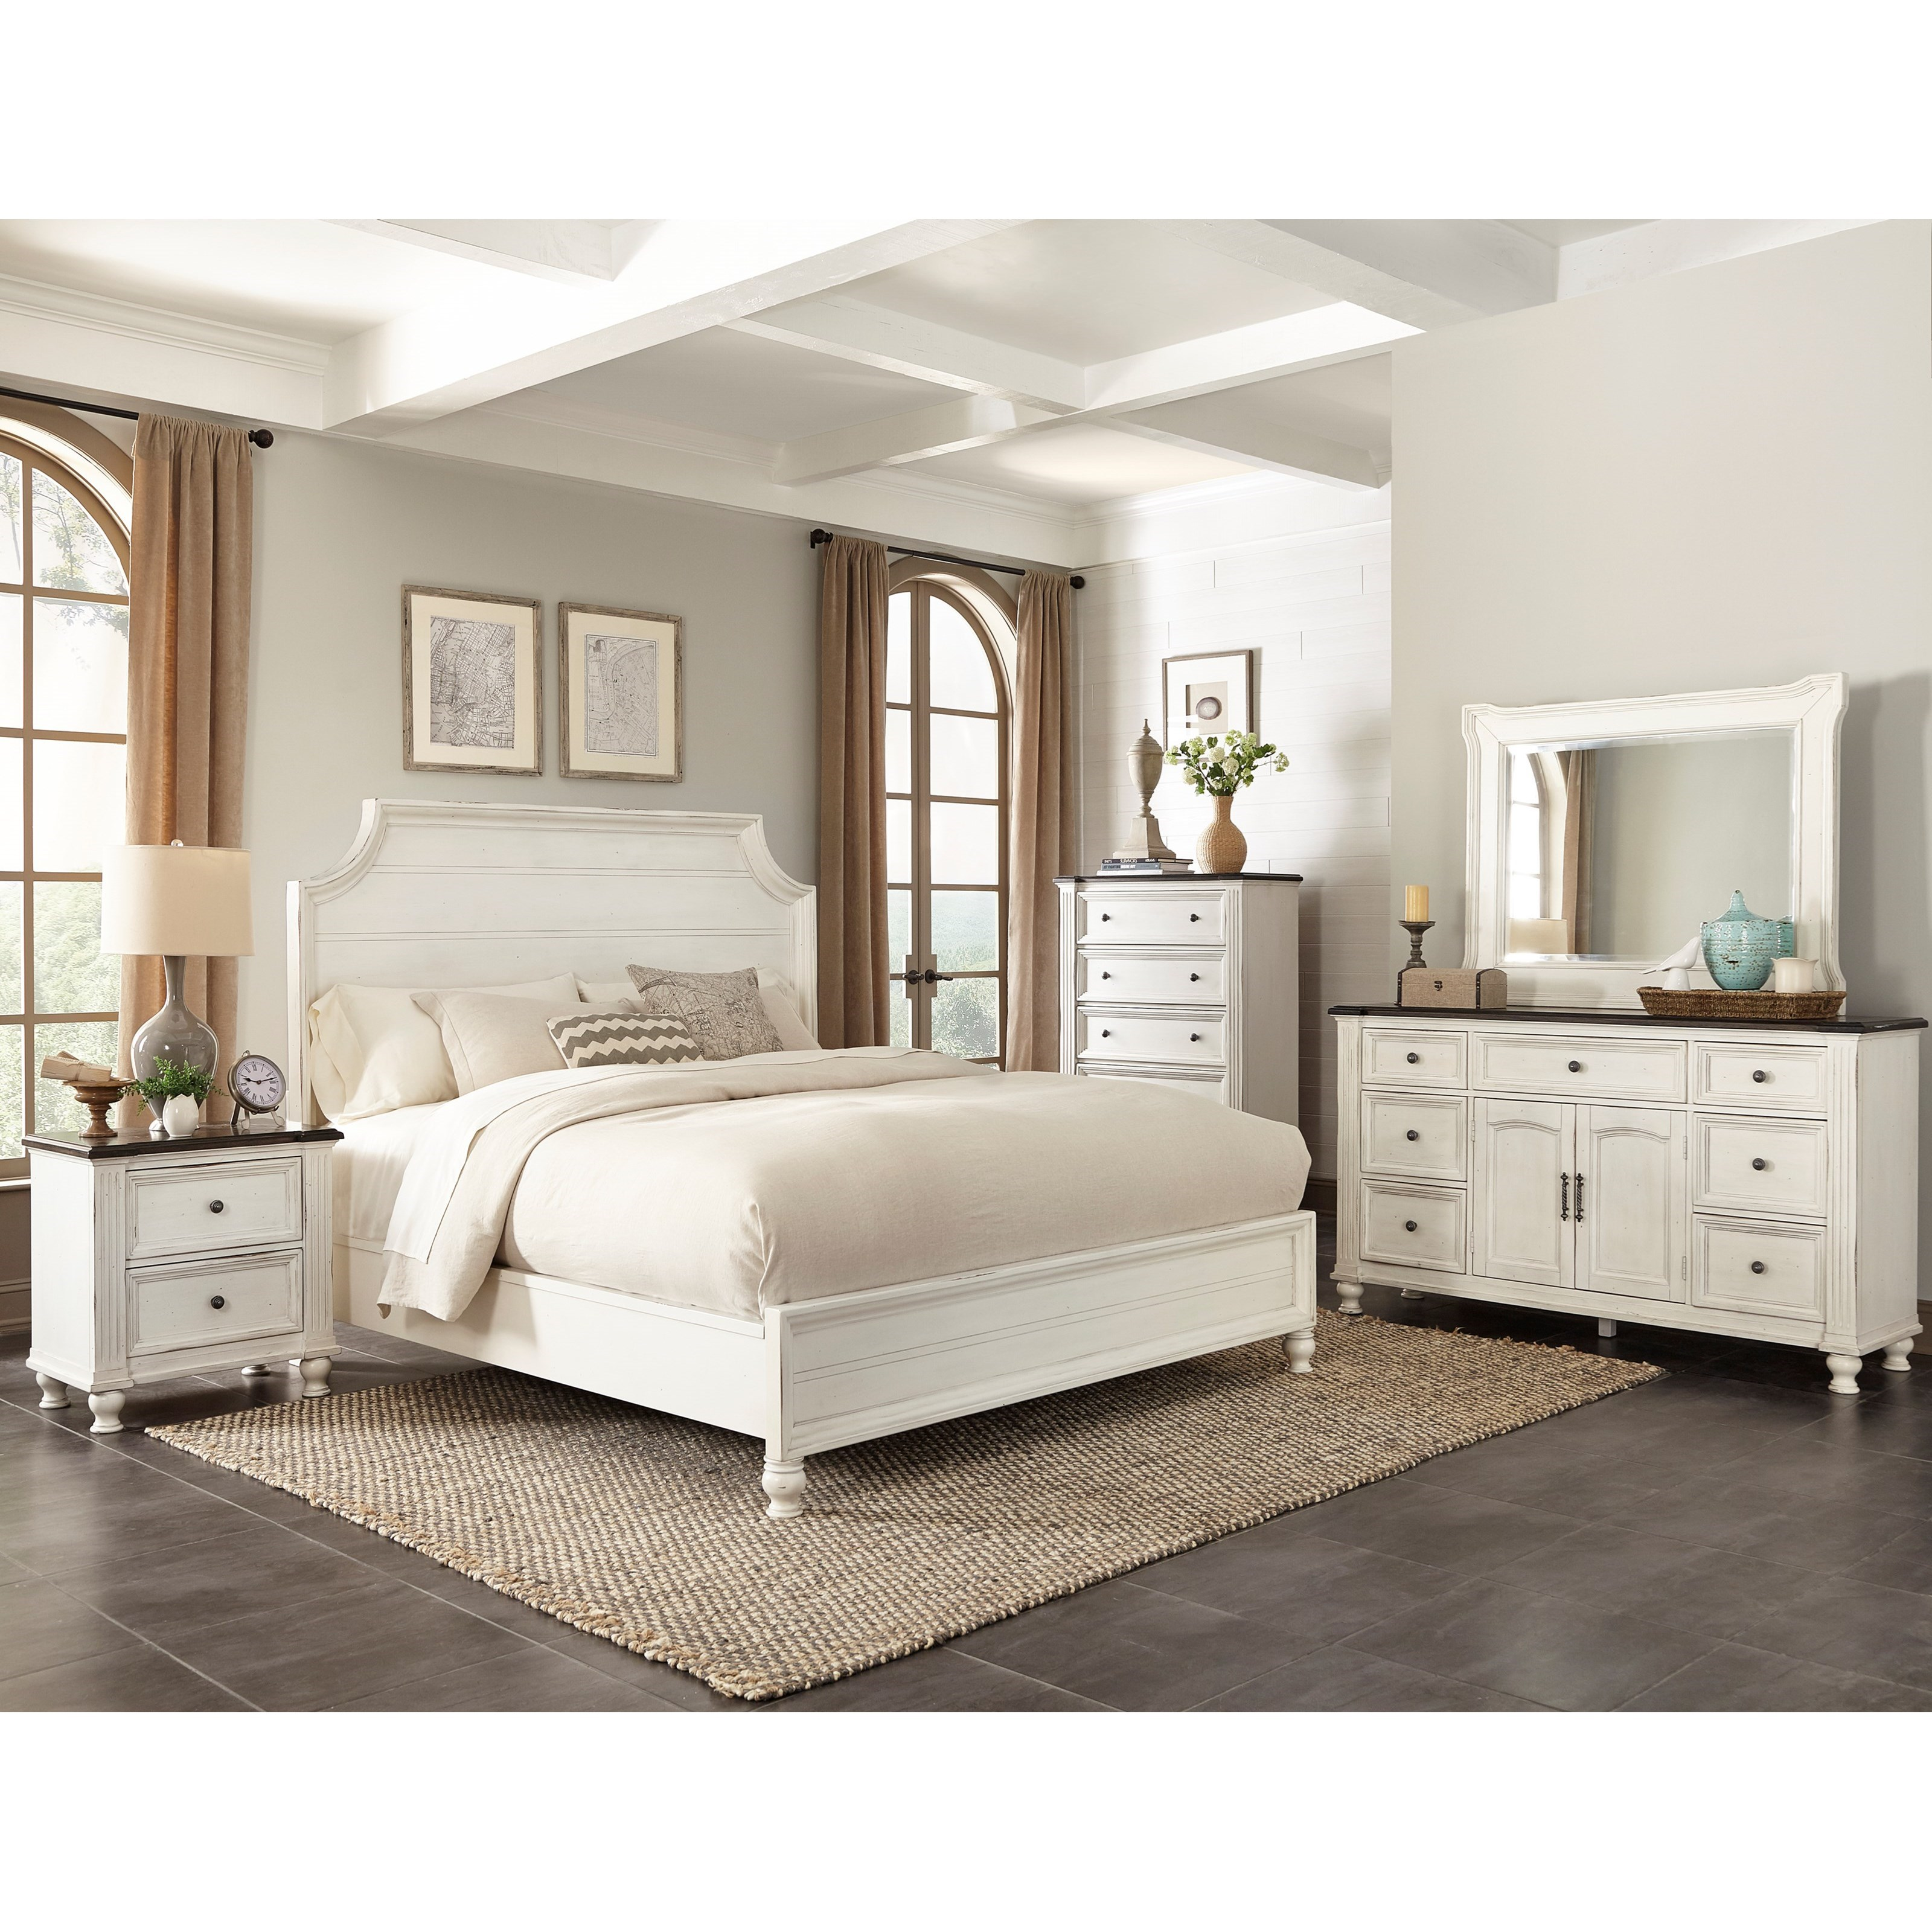 Sunny designs carriage house 2308ec n 2 drawer night stand john v schultz furniture night stands for Sunny designs bedroom furniture